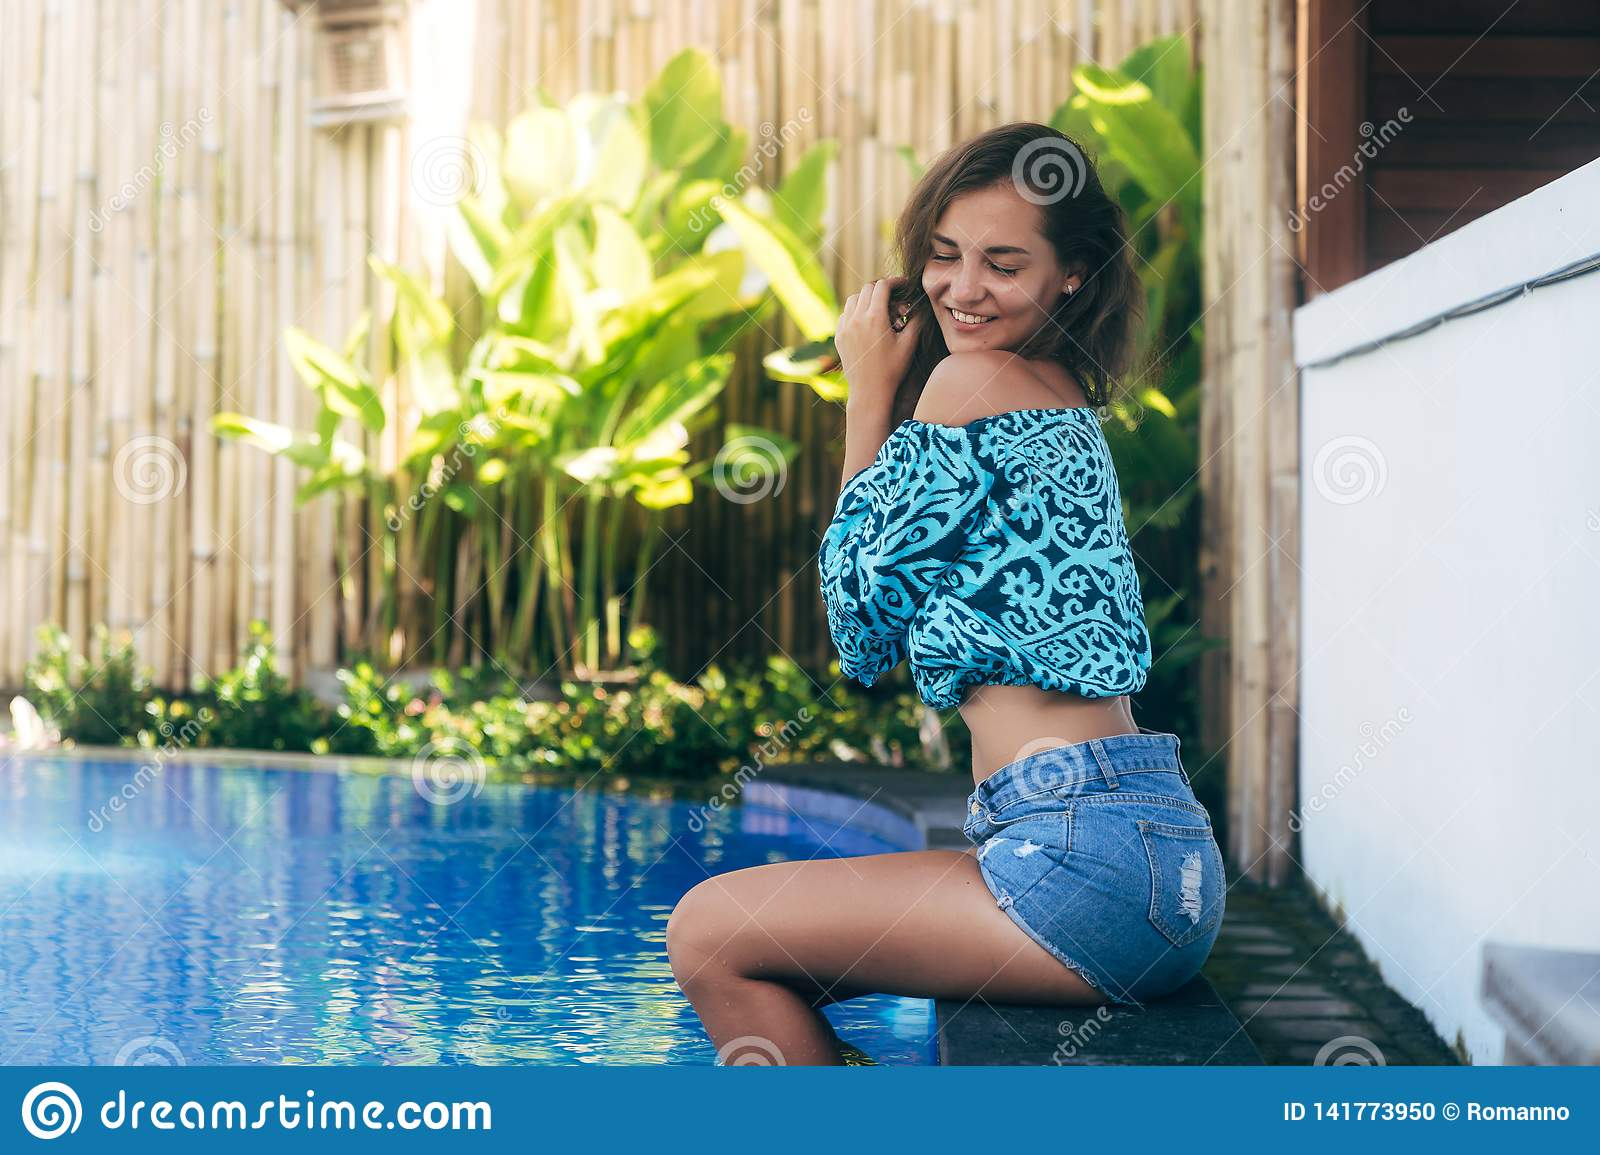 29dcbd513 Sensual girl in denim shorts and top sits on pool. Young tanned model  resting on